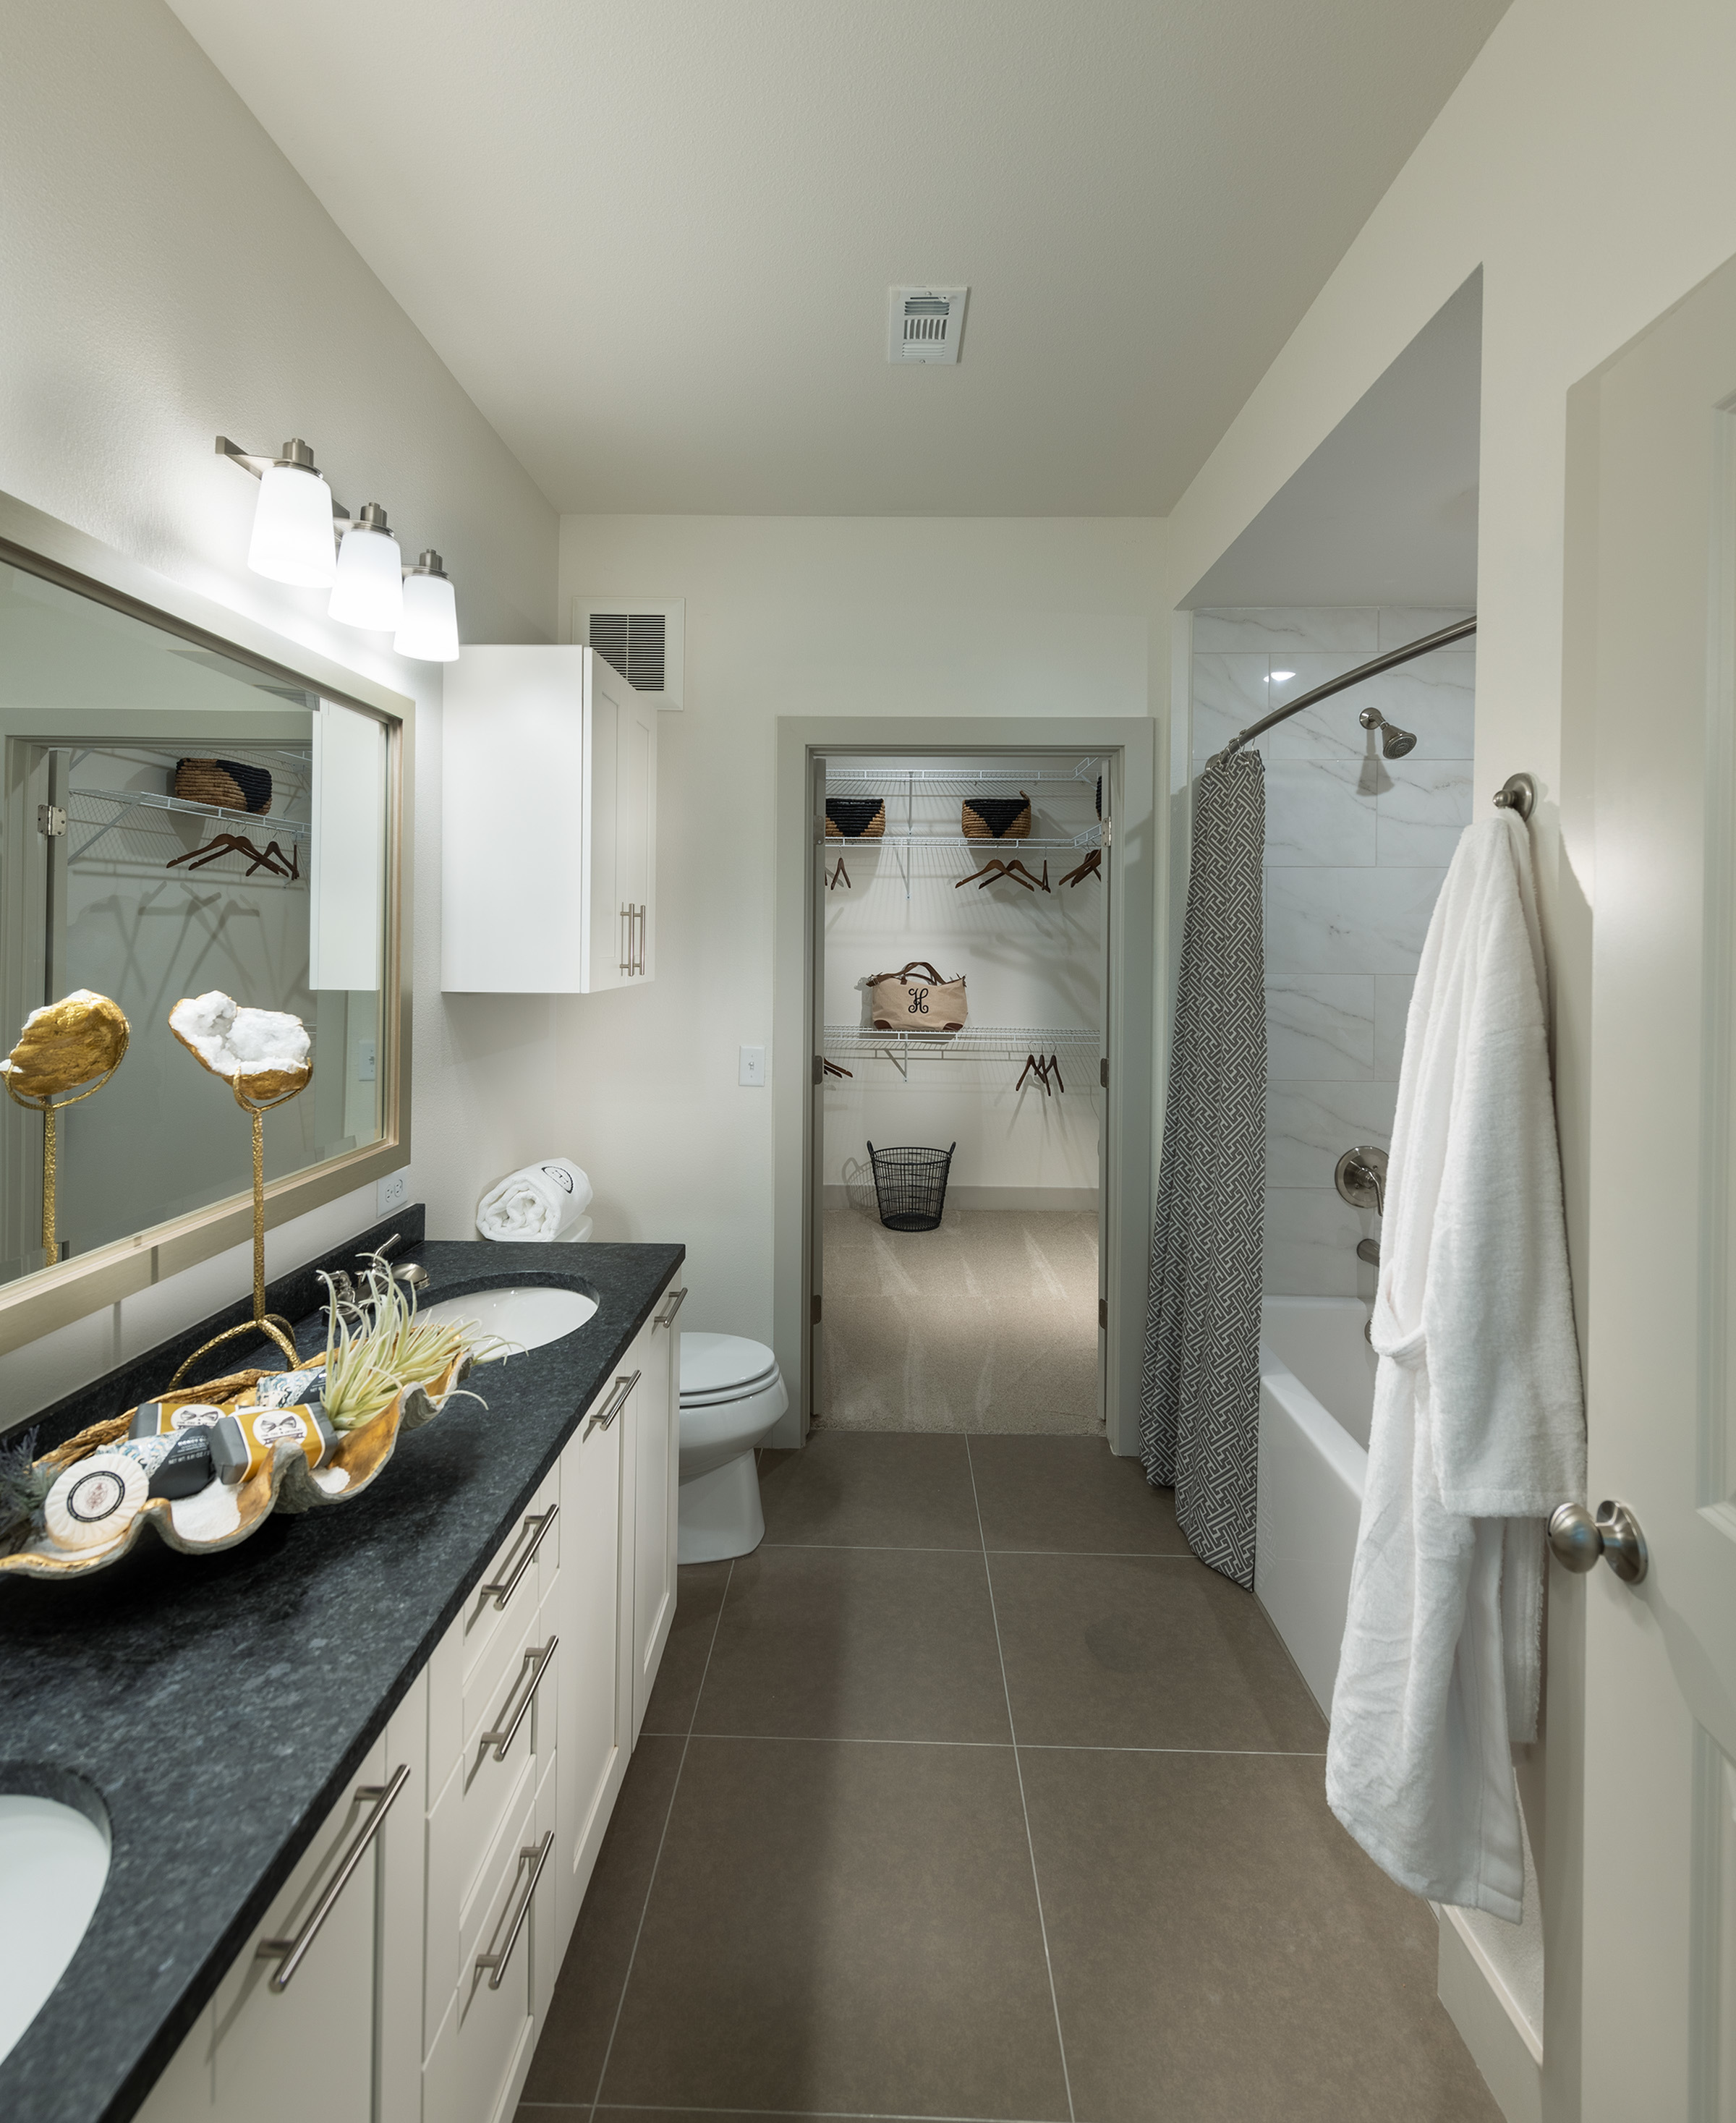 Image of Spa-inspired bathrooms with large soaking tub for Hanover Platt Park